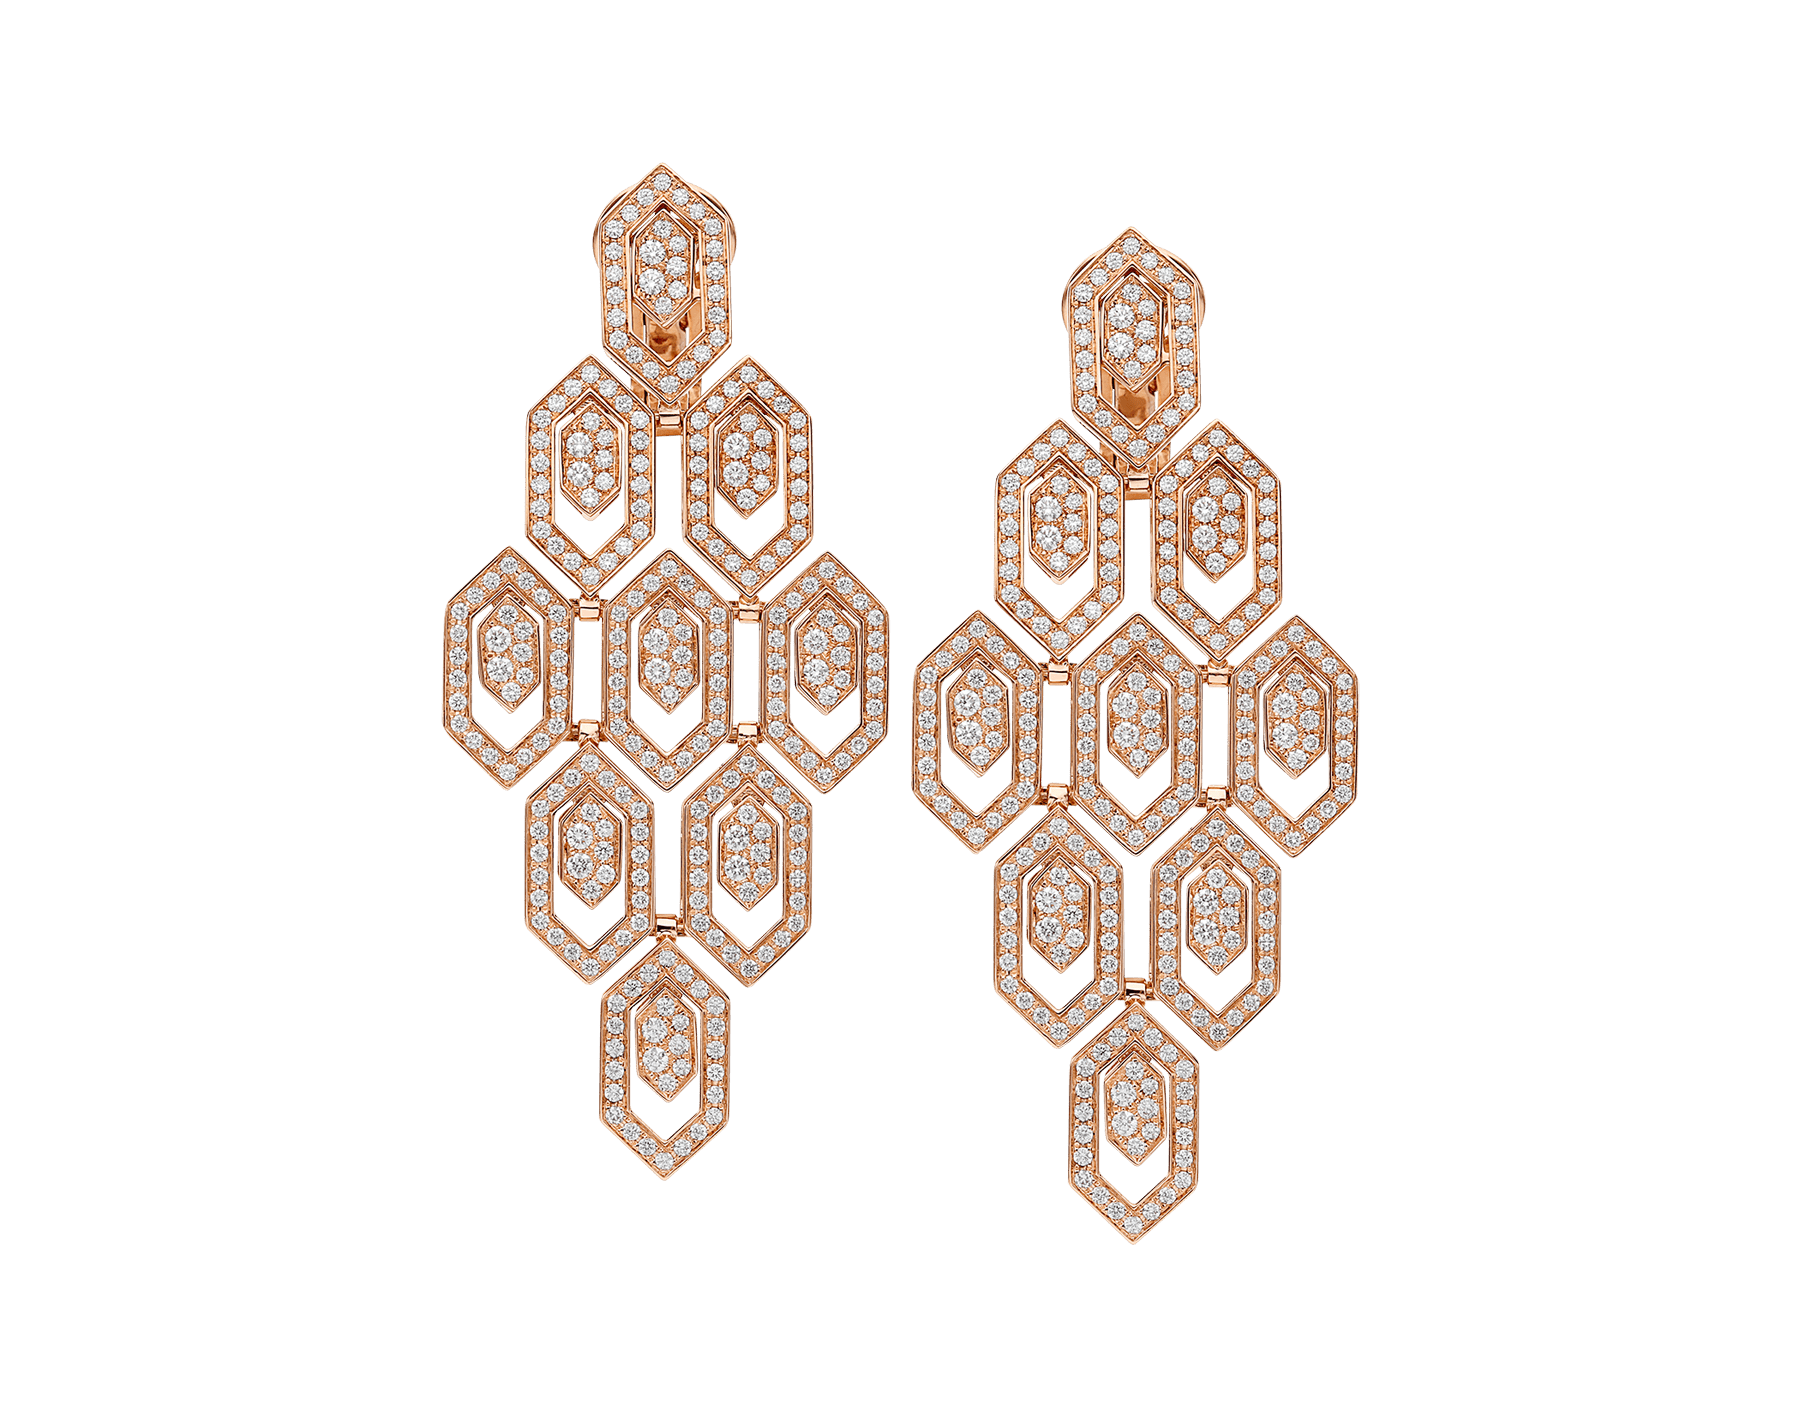 Serpenti 18 kt rose gold earrings set with pavé diamonds. 356507 image 1